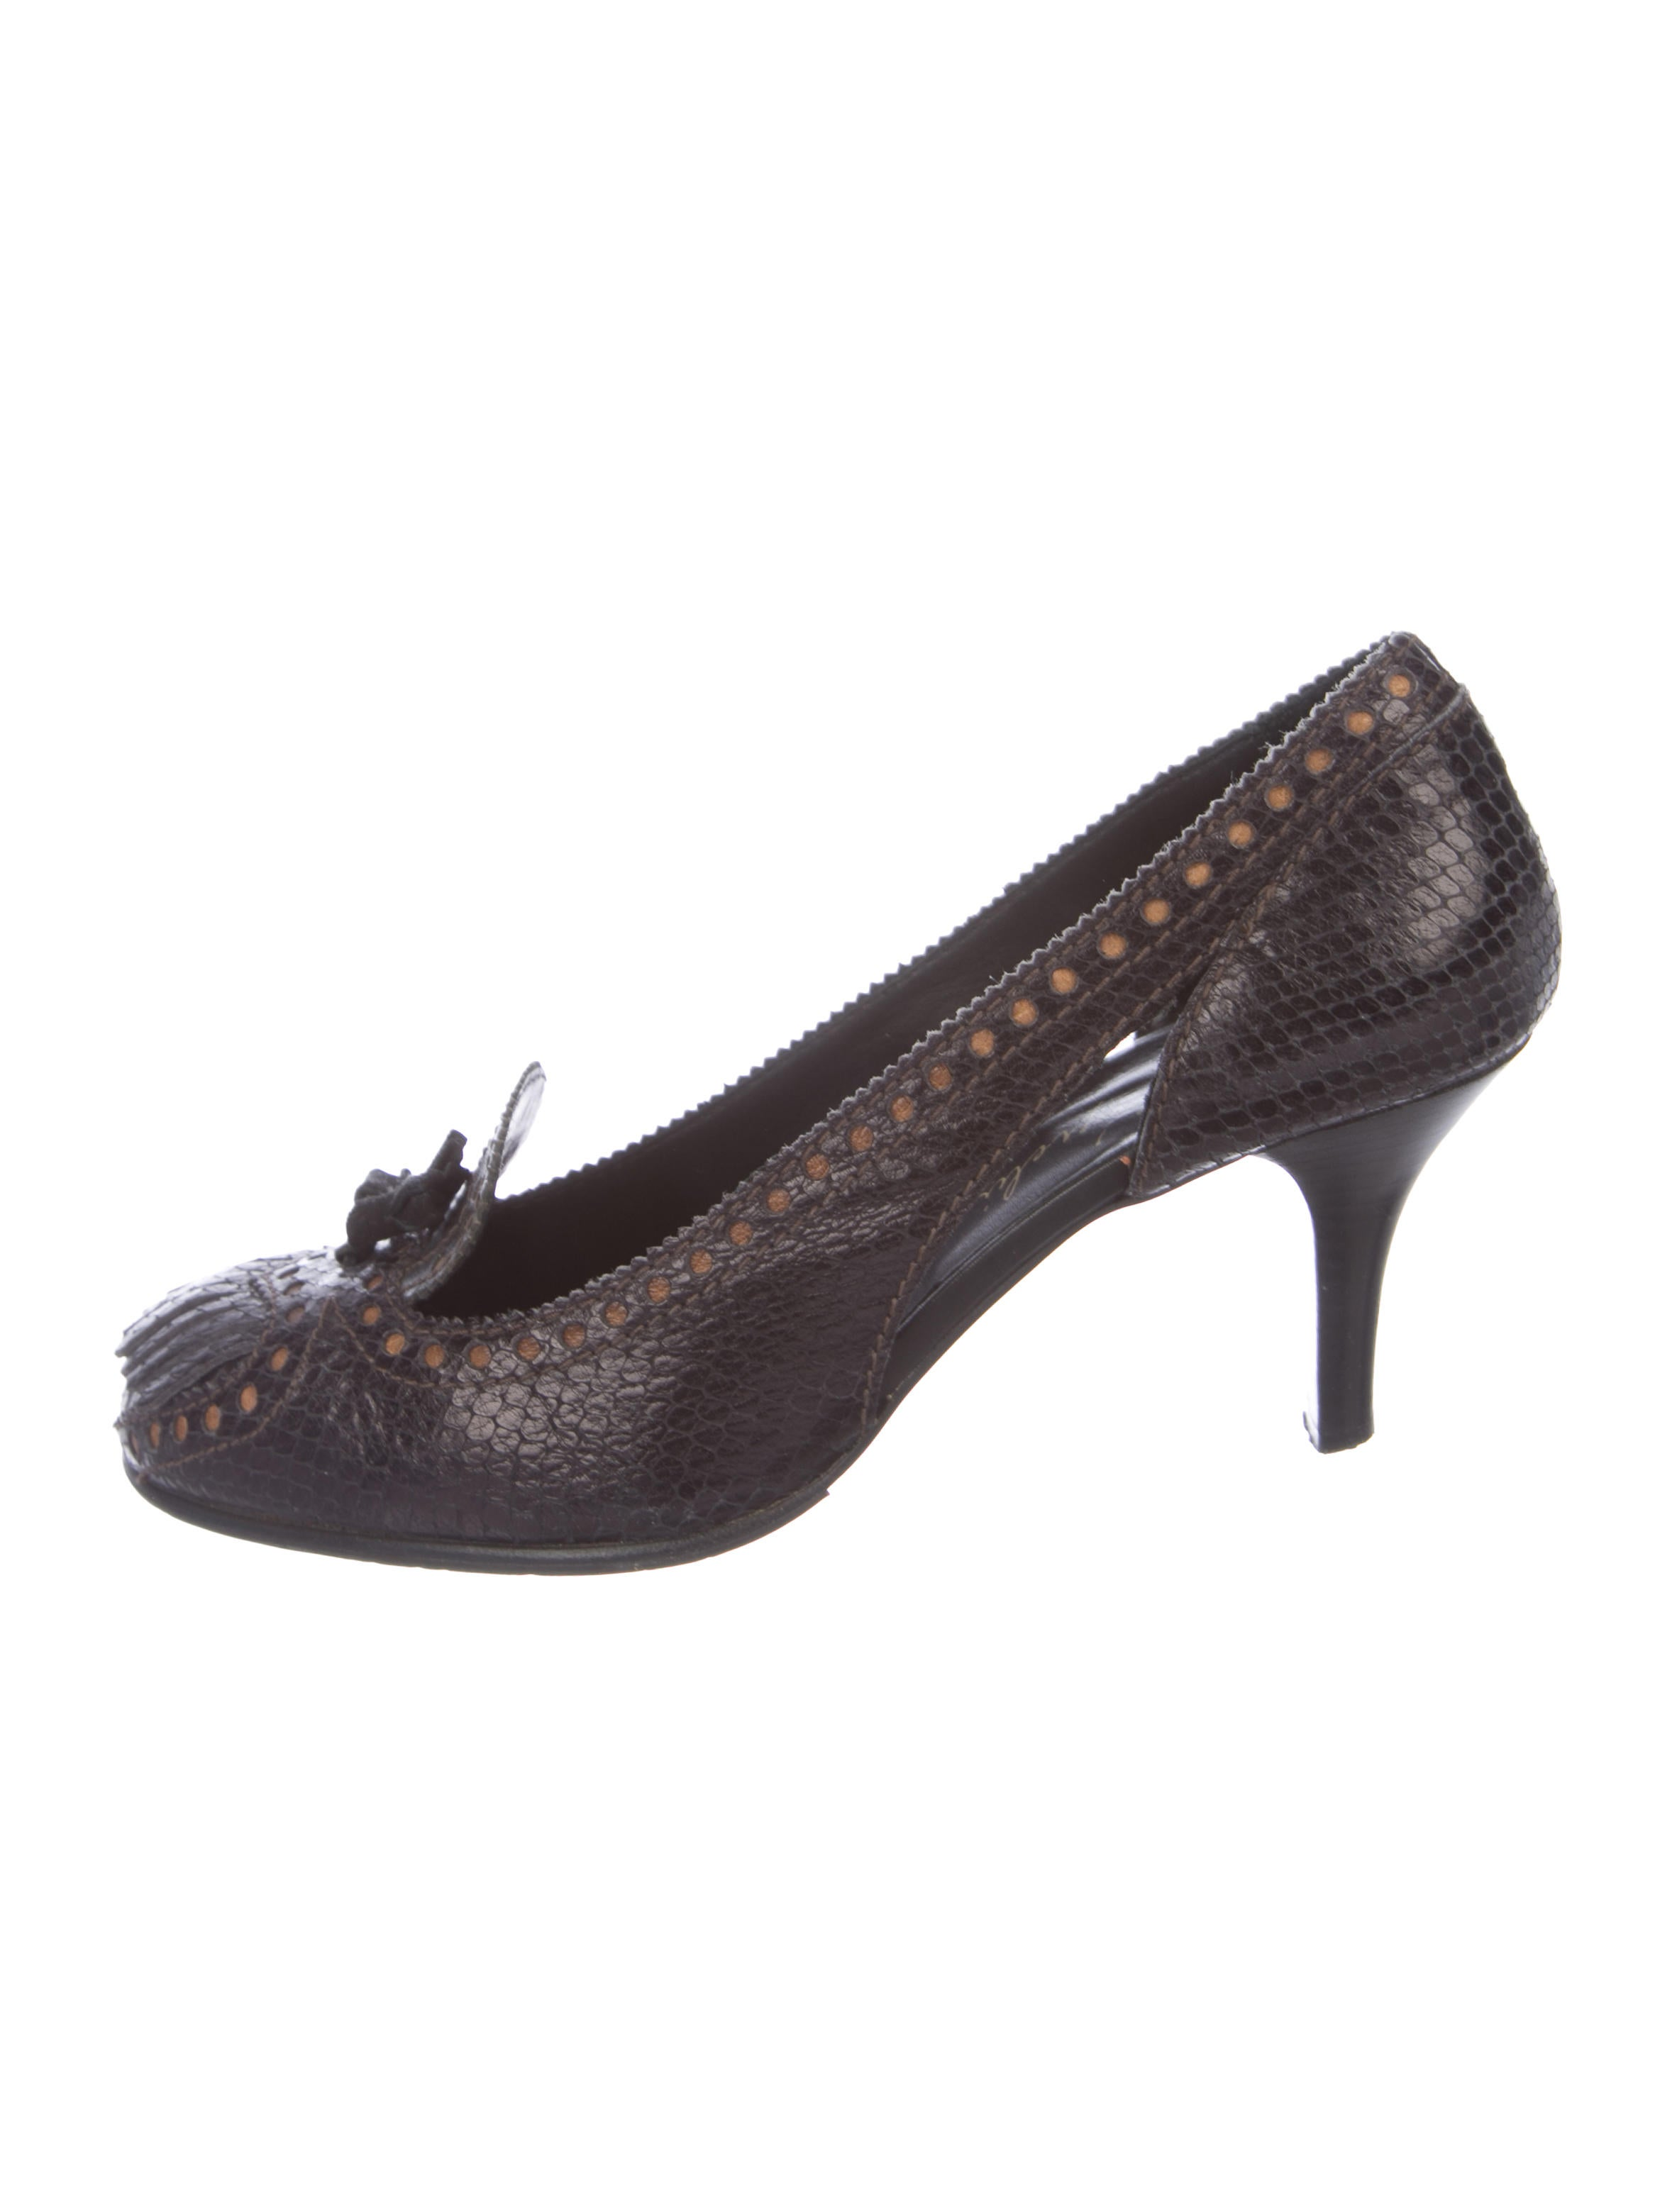 sale Inexpensive ebay sale online Henry Beguelin Embossed Leather Platform Pumps Lc33xbo